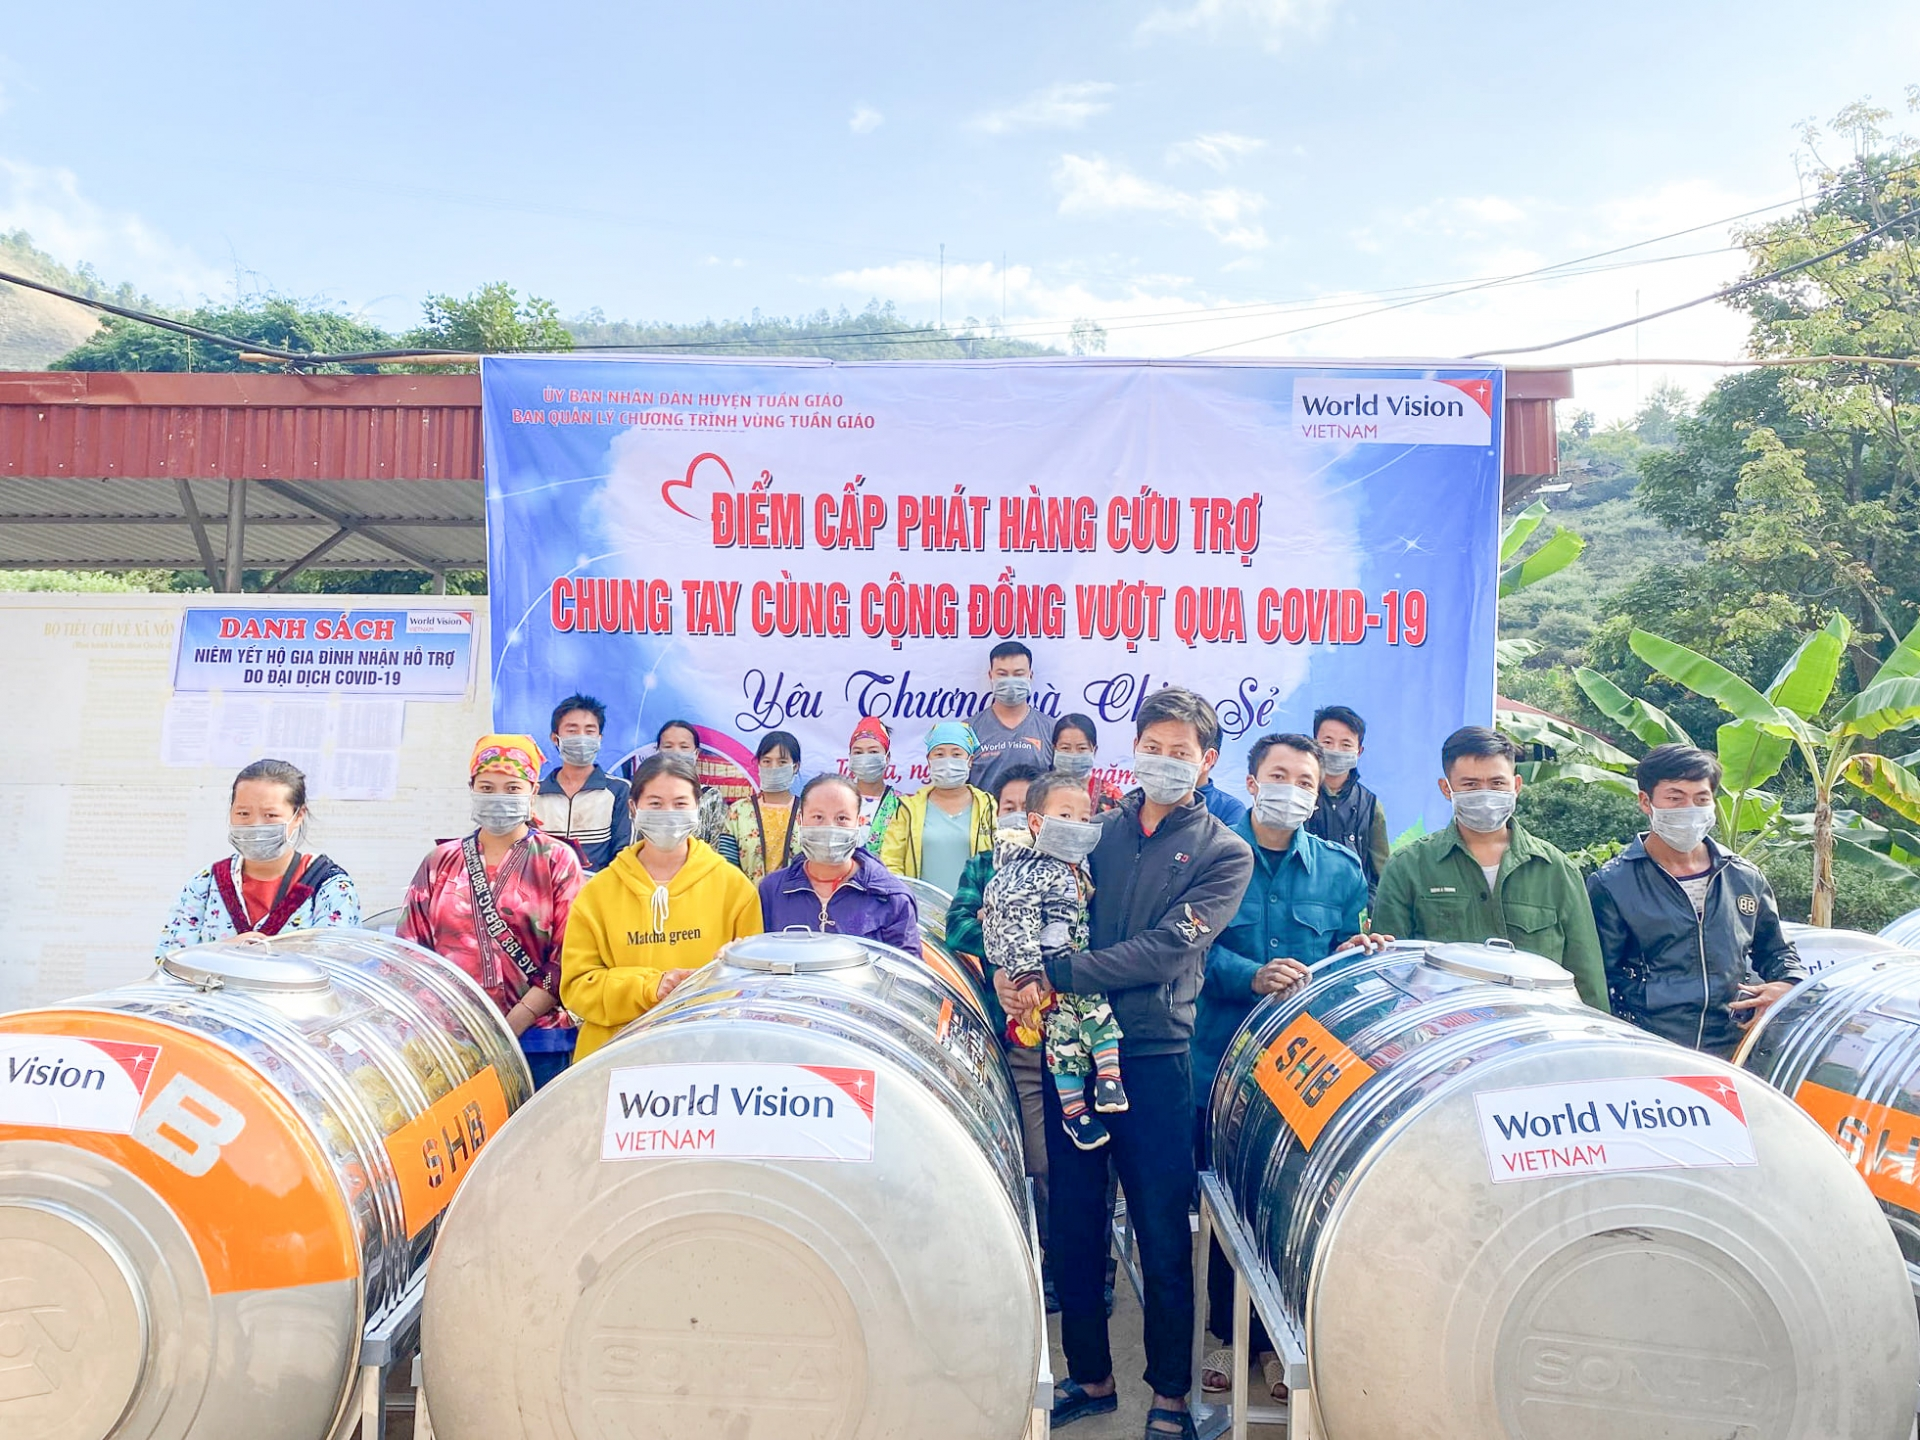 World Vision's COVID 19 Response and Recovery Program benefits Dien Bien